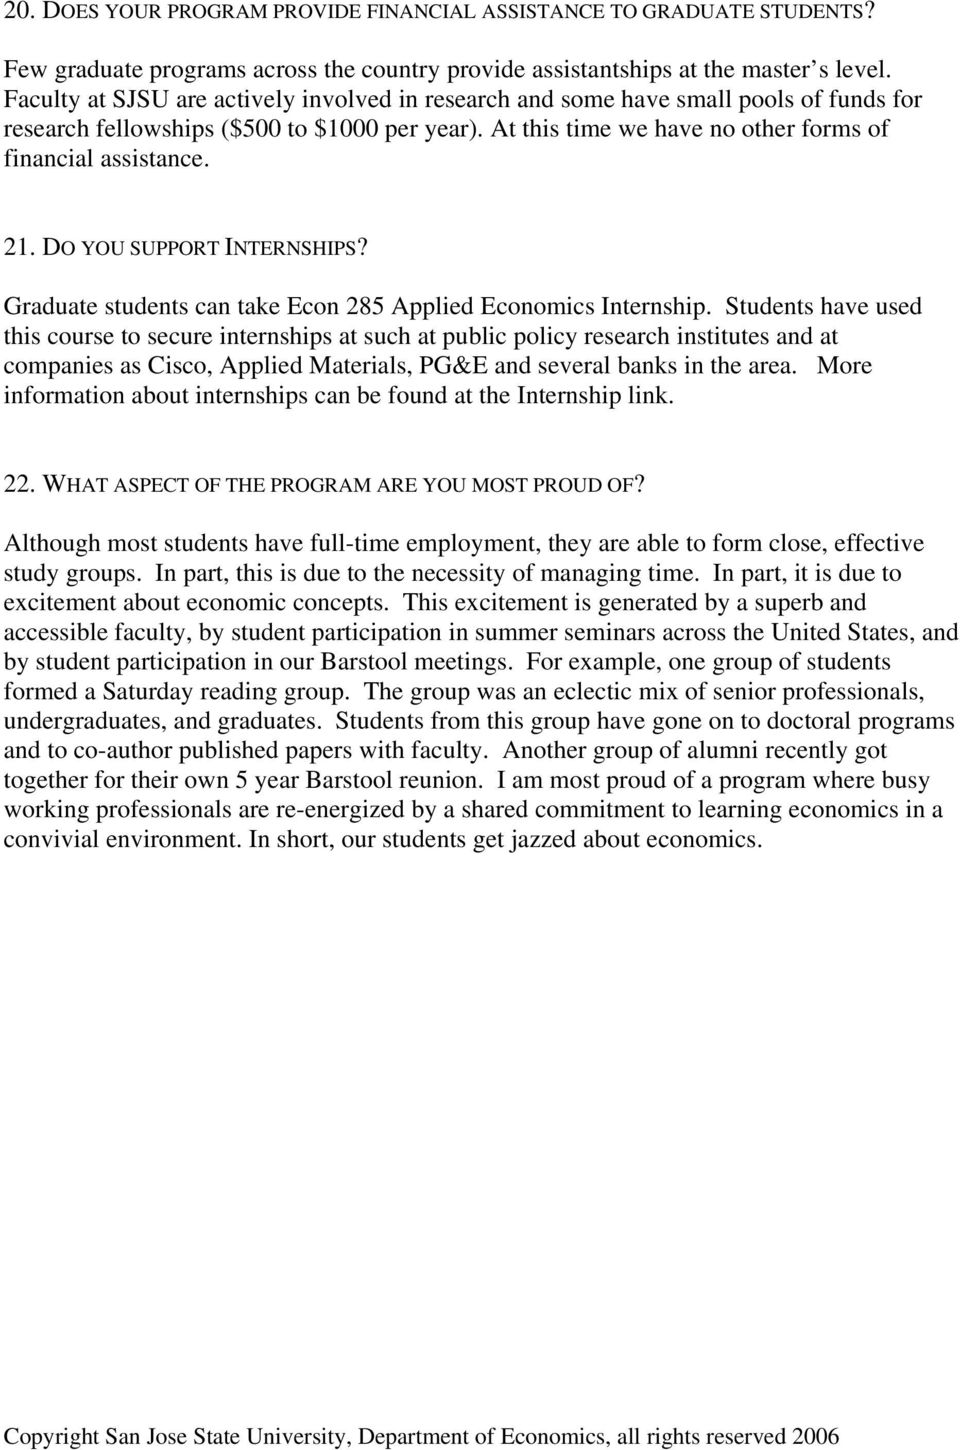 DO YOU SUPPORT INTERNSHIPS? Graduate students can take Econ 285 Applied Economics Internship.